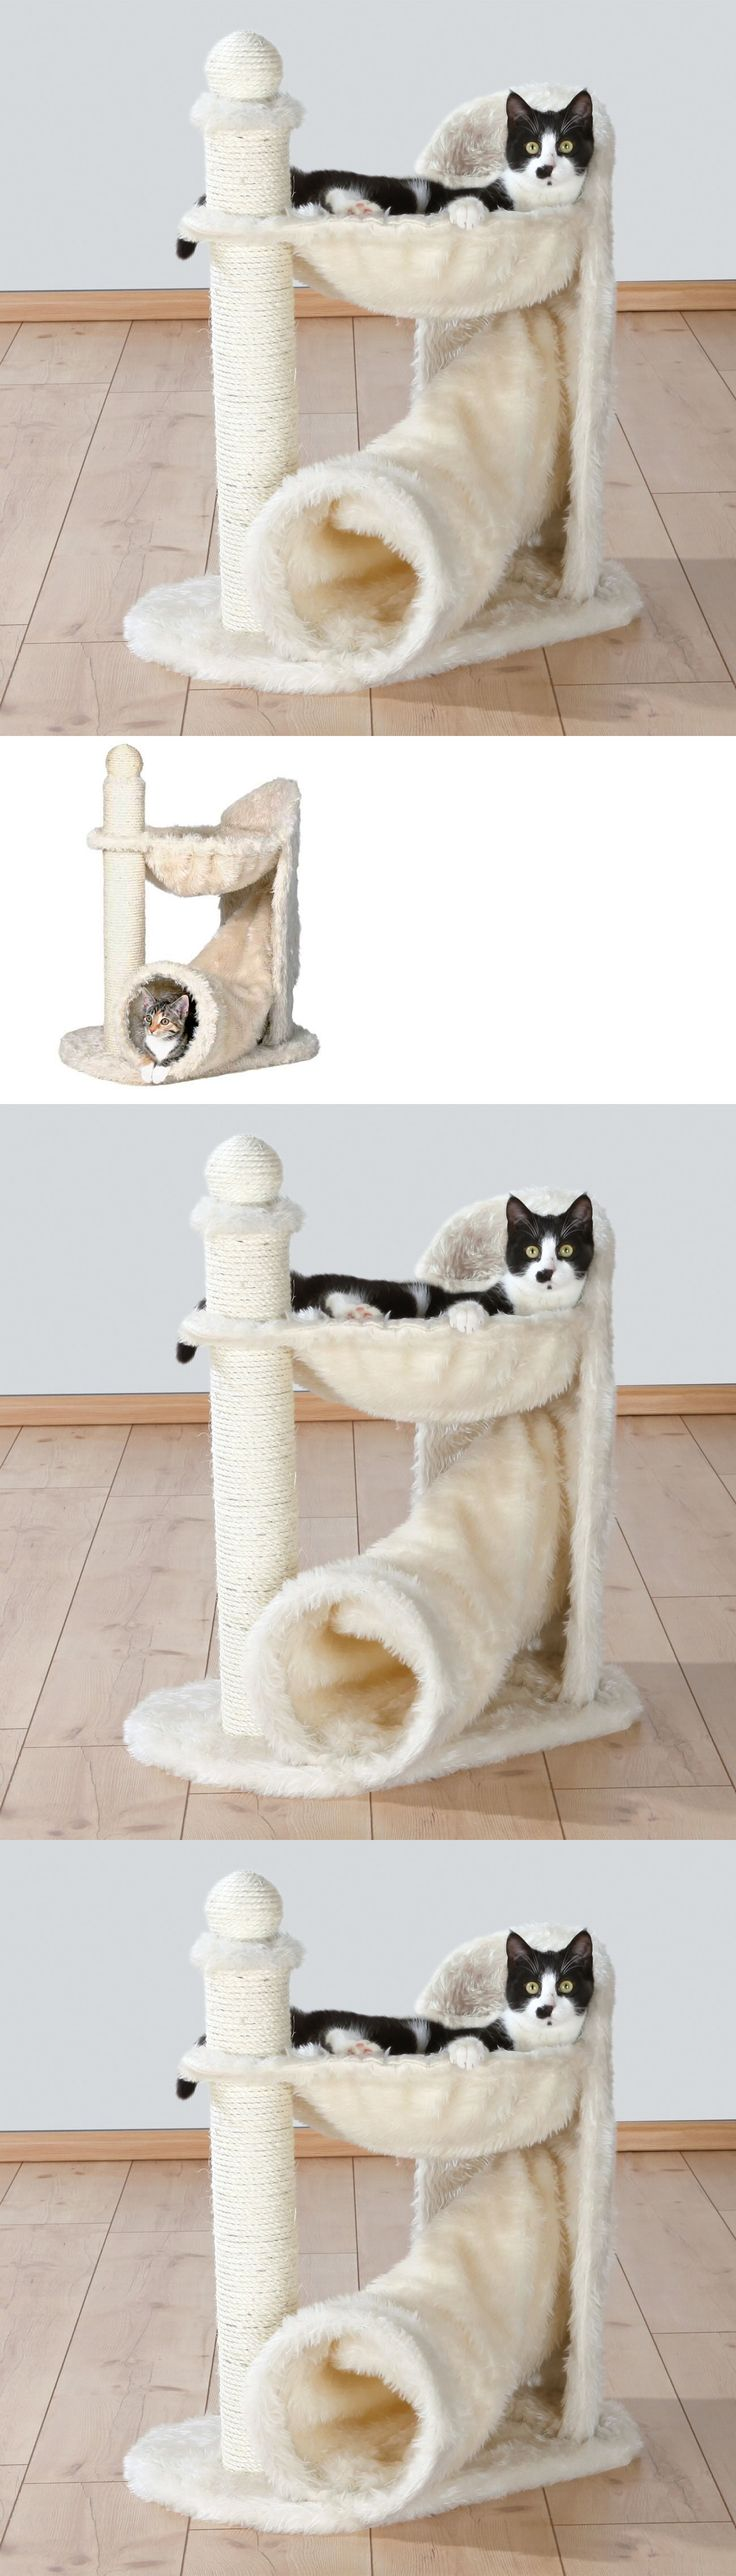 Animals Cats: Cat Tree Condo Scratcher Pet Tower Toy Hammock House Post Bed Kitten Furniture BUY IT NOW ONLY: $49.99